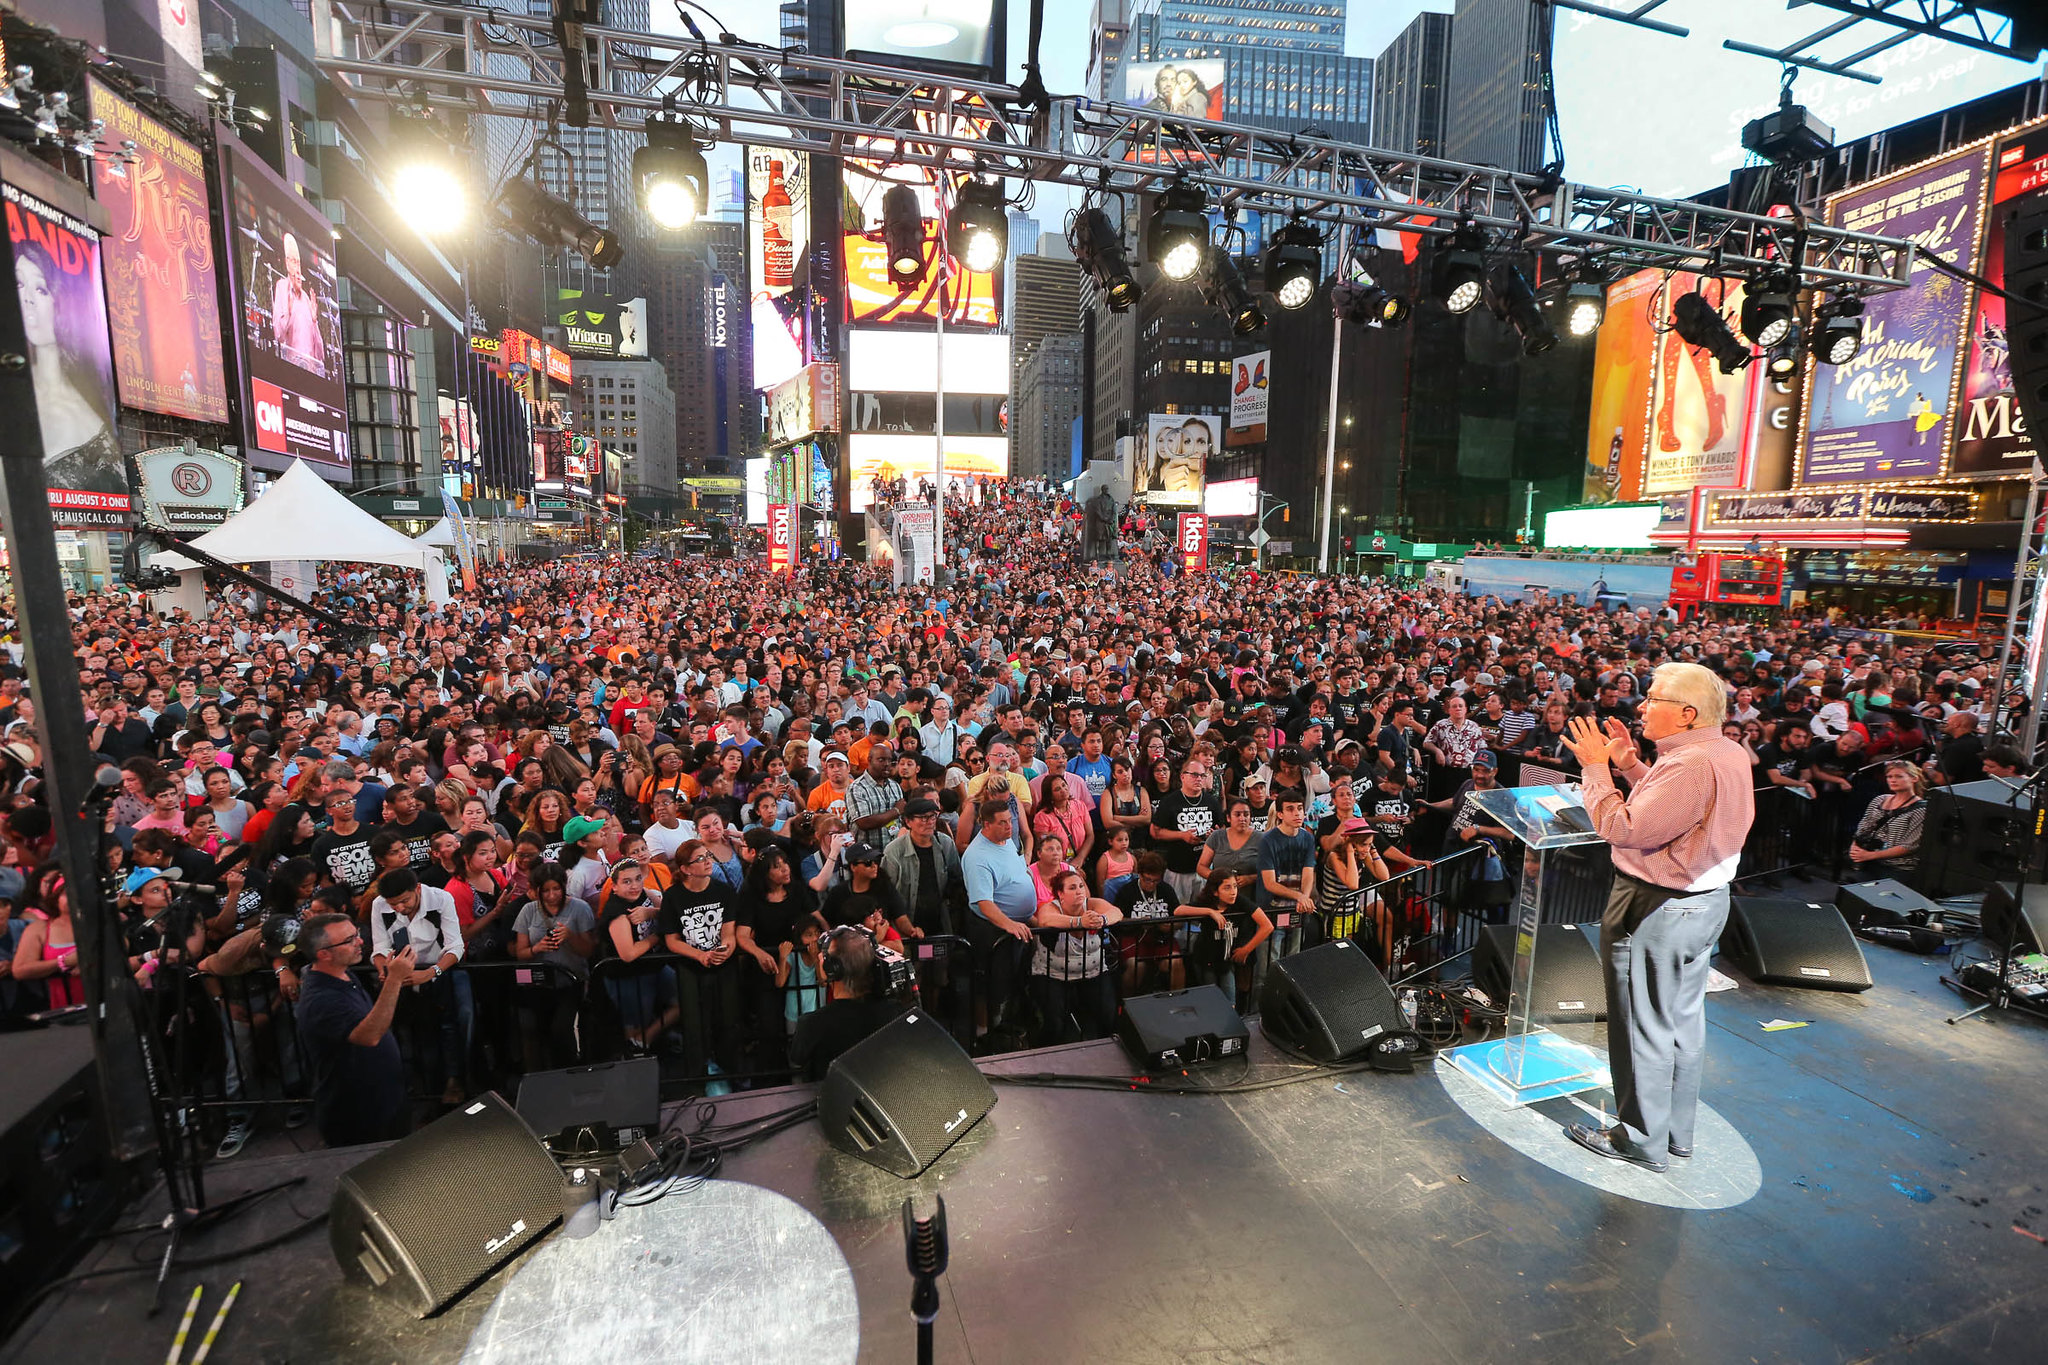 Luis preaching in Times Square, New York, in 2015. This event was part of a massive, three-month campaign to saturate New York City with the Gospel. Luis and the team partnered with more than 1,700 local churches to hold hundreds of evangelistic outreaches during the summer of 2015.